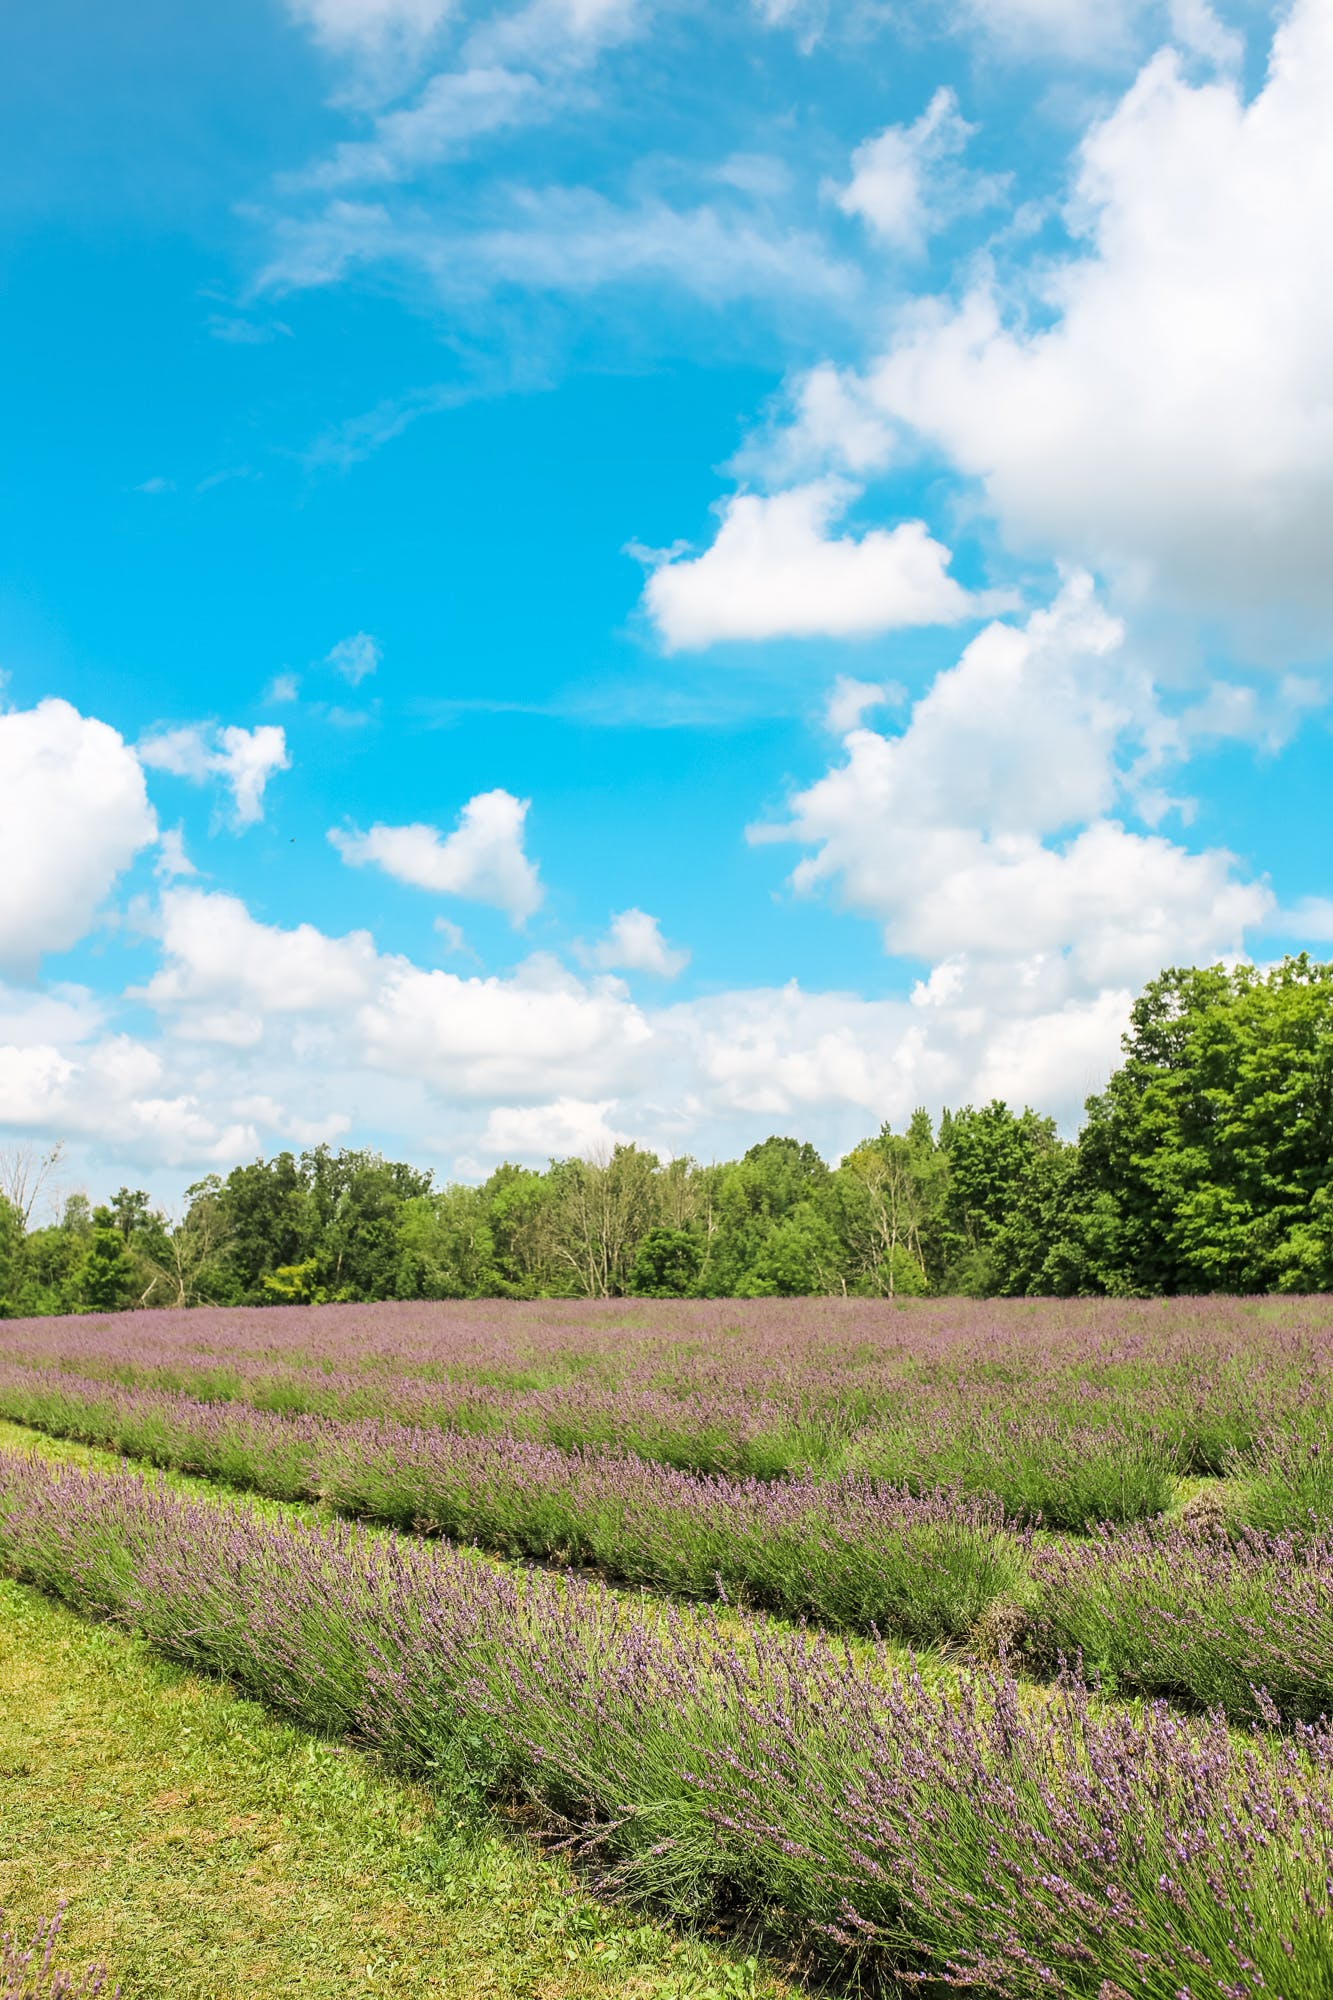 Terre Bleu lavender farm is a gorgeous lavender field located in Guelph, Ontario, a mere 1 hour drive from Toronto.